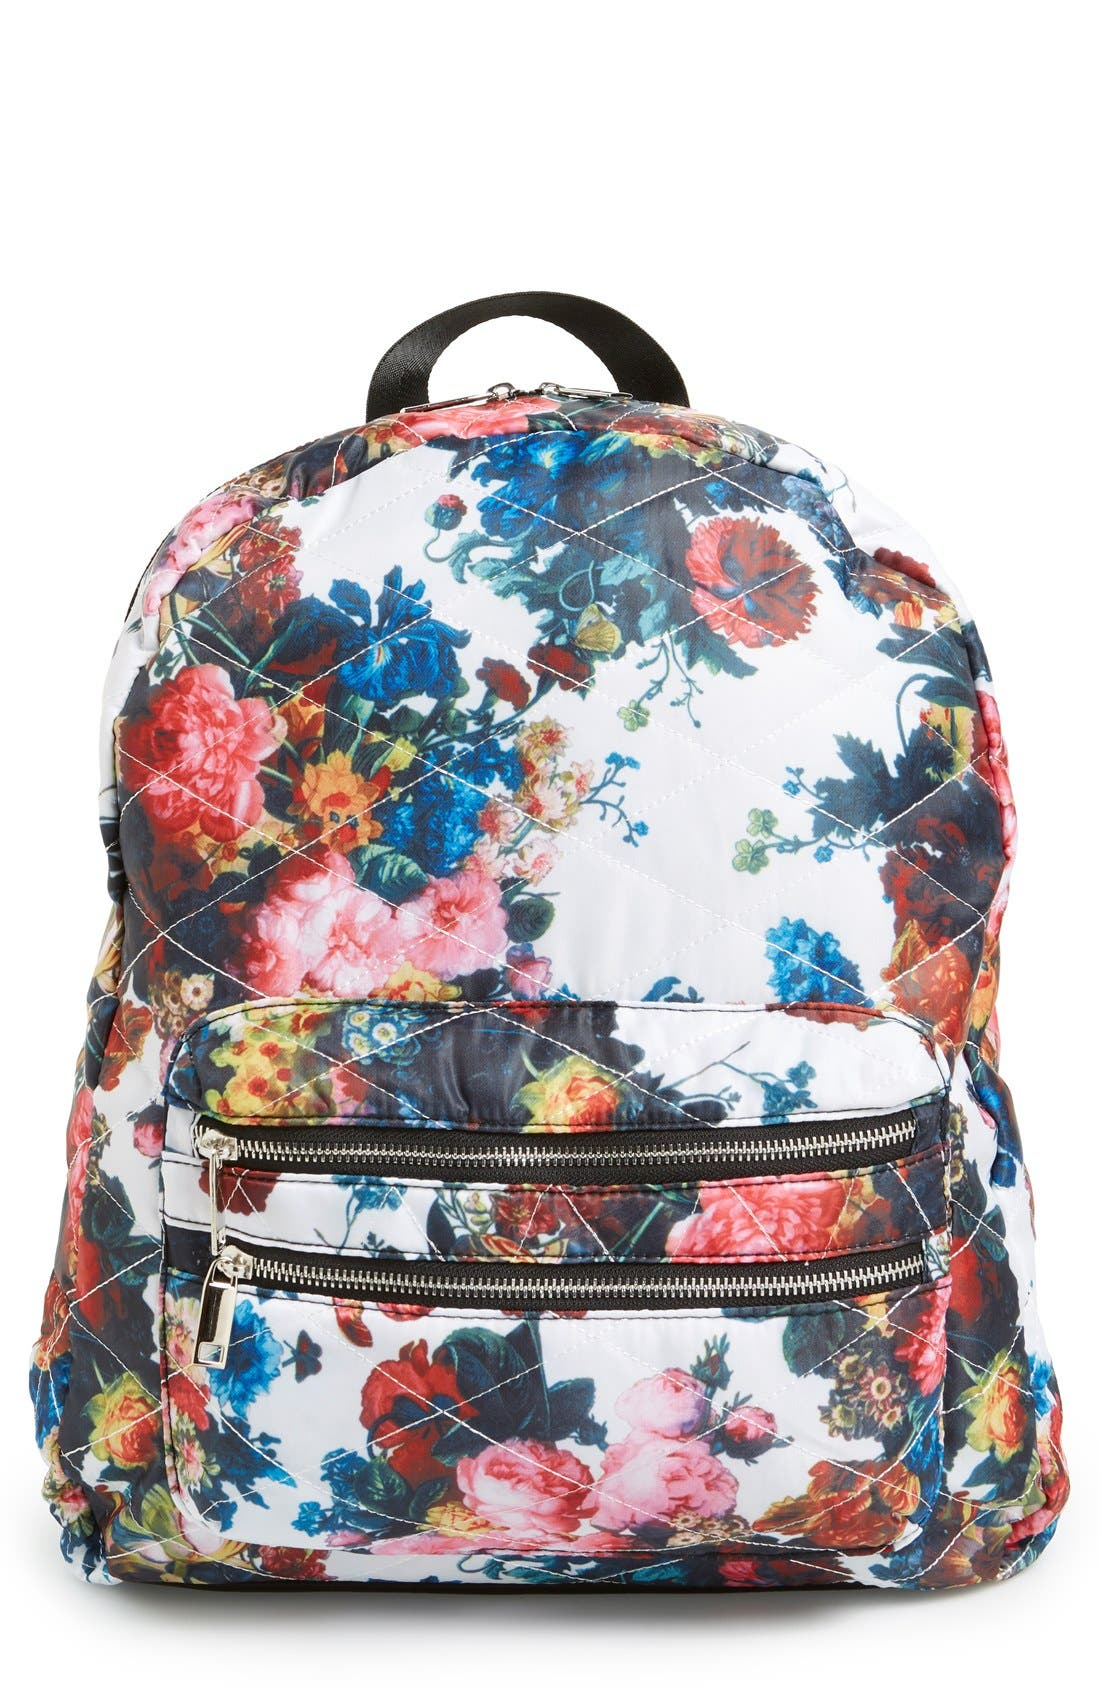 Alternate Image 1 Selected - Dolce Girl 'Dome' Floral Print Quilted Backpack